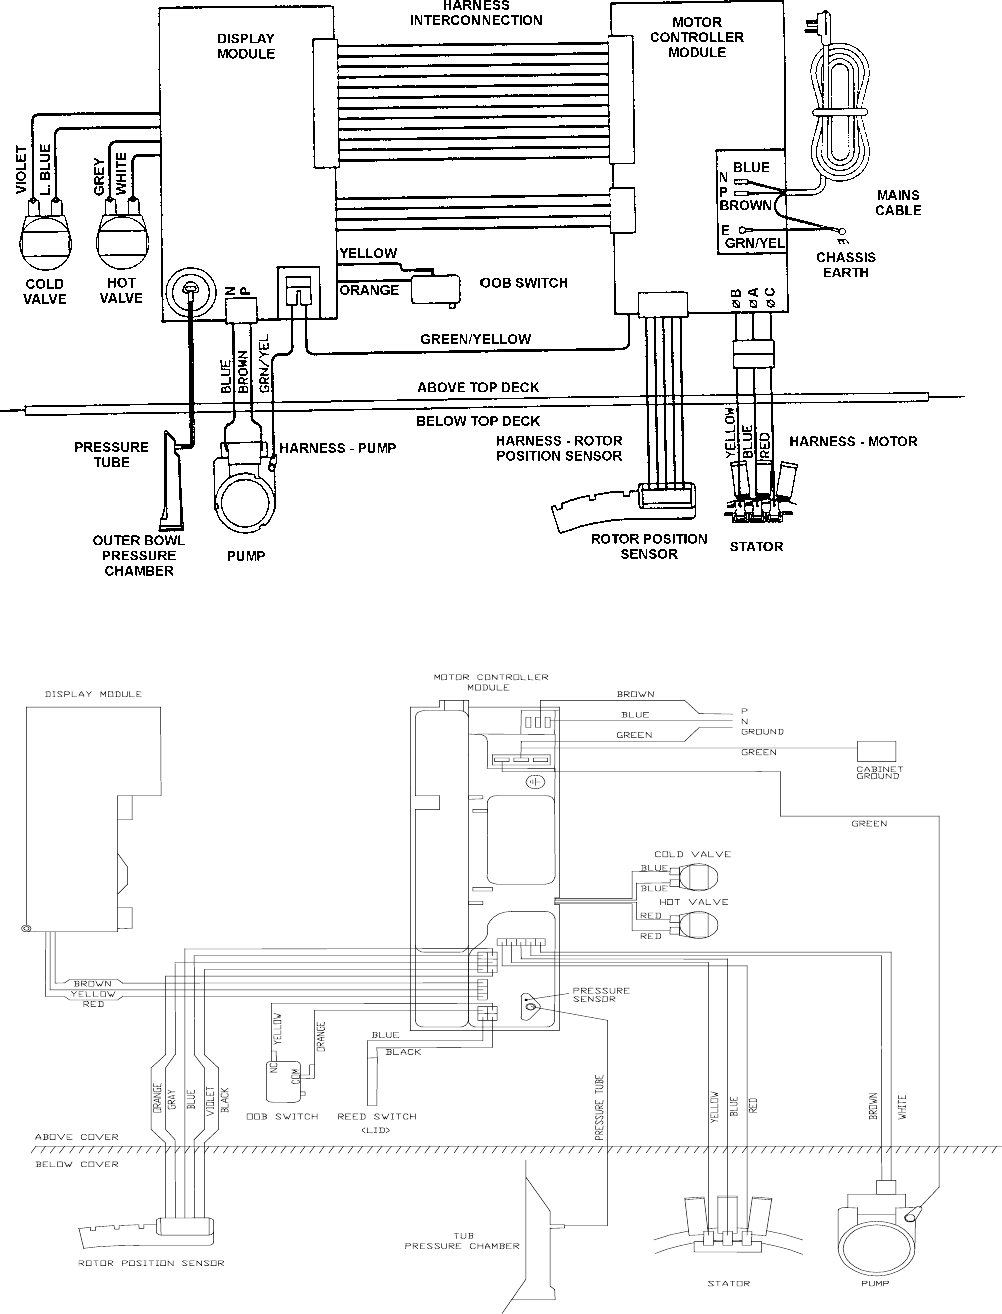 diagrams wiring   nest wiring diagram pdf